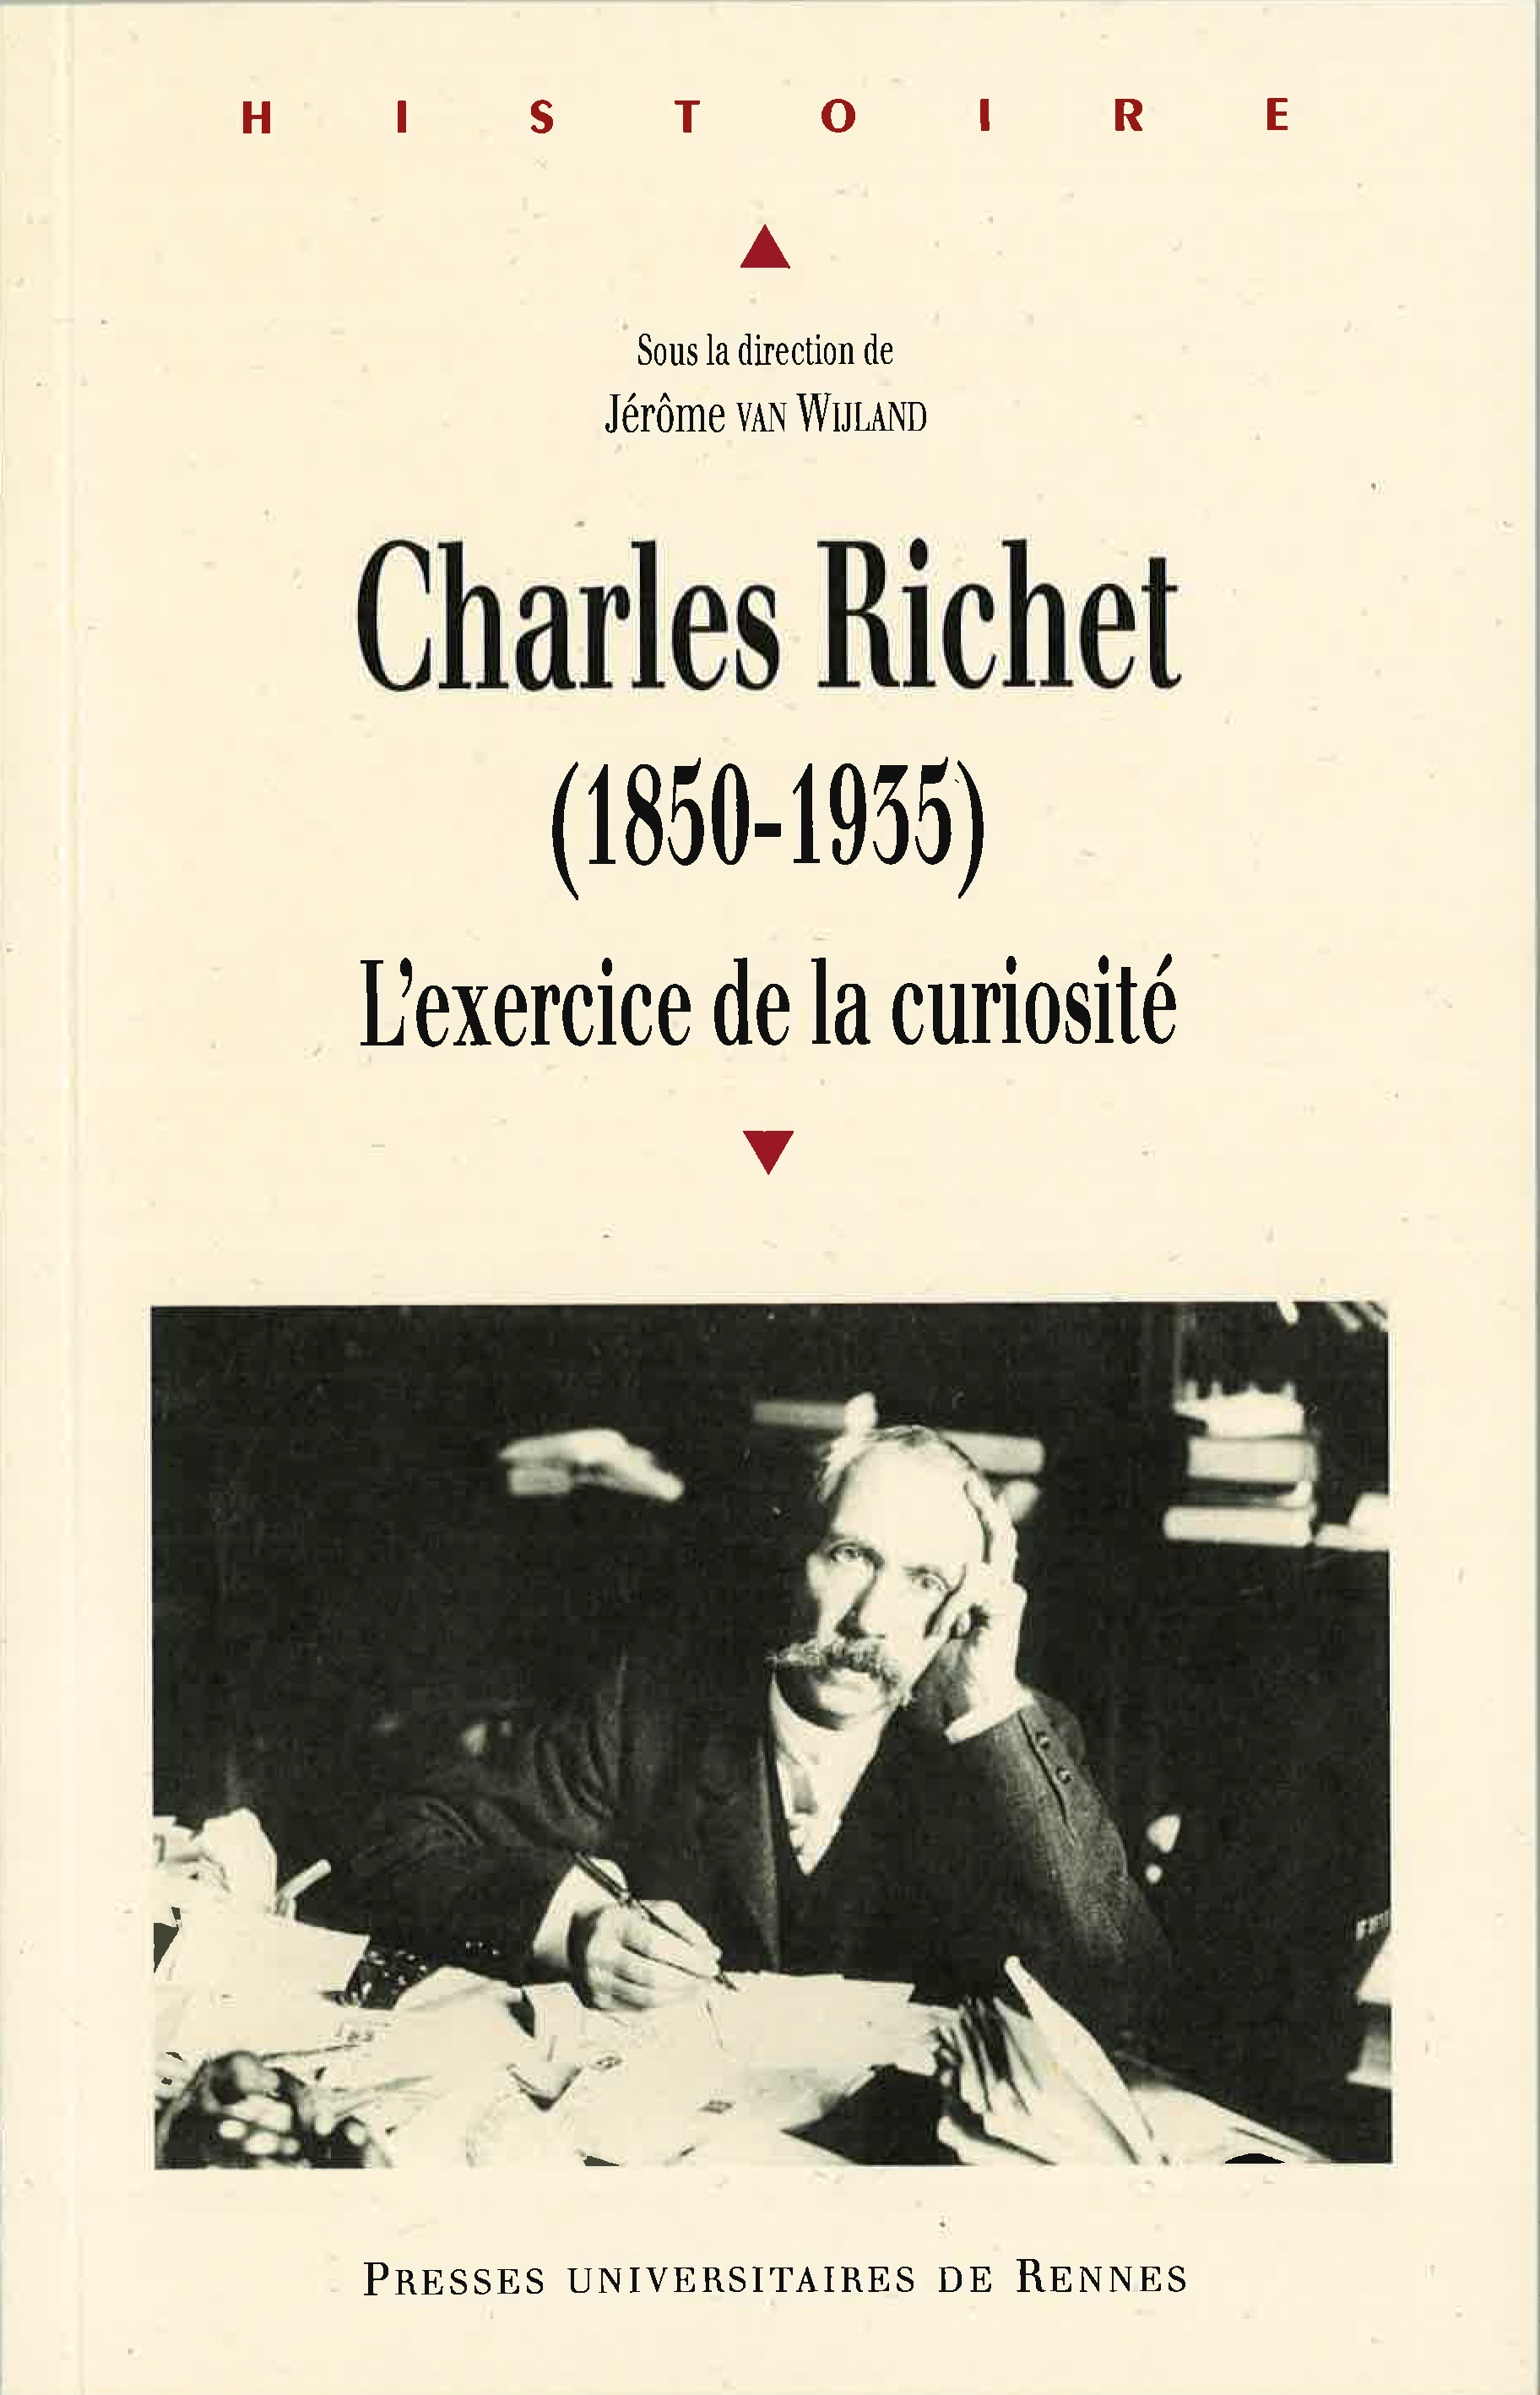 Actes du colloque sur Charles Richet